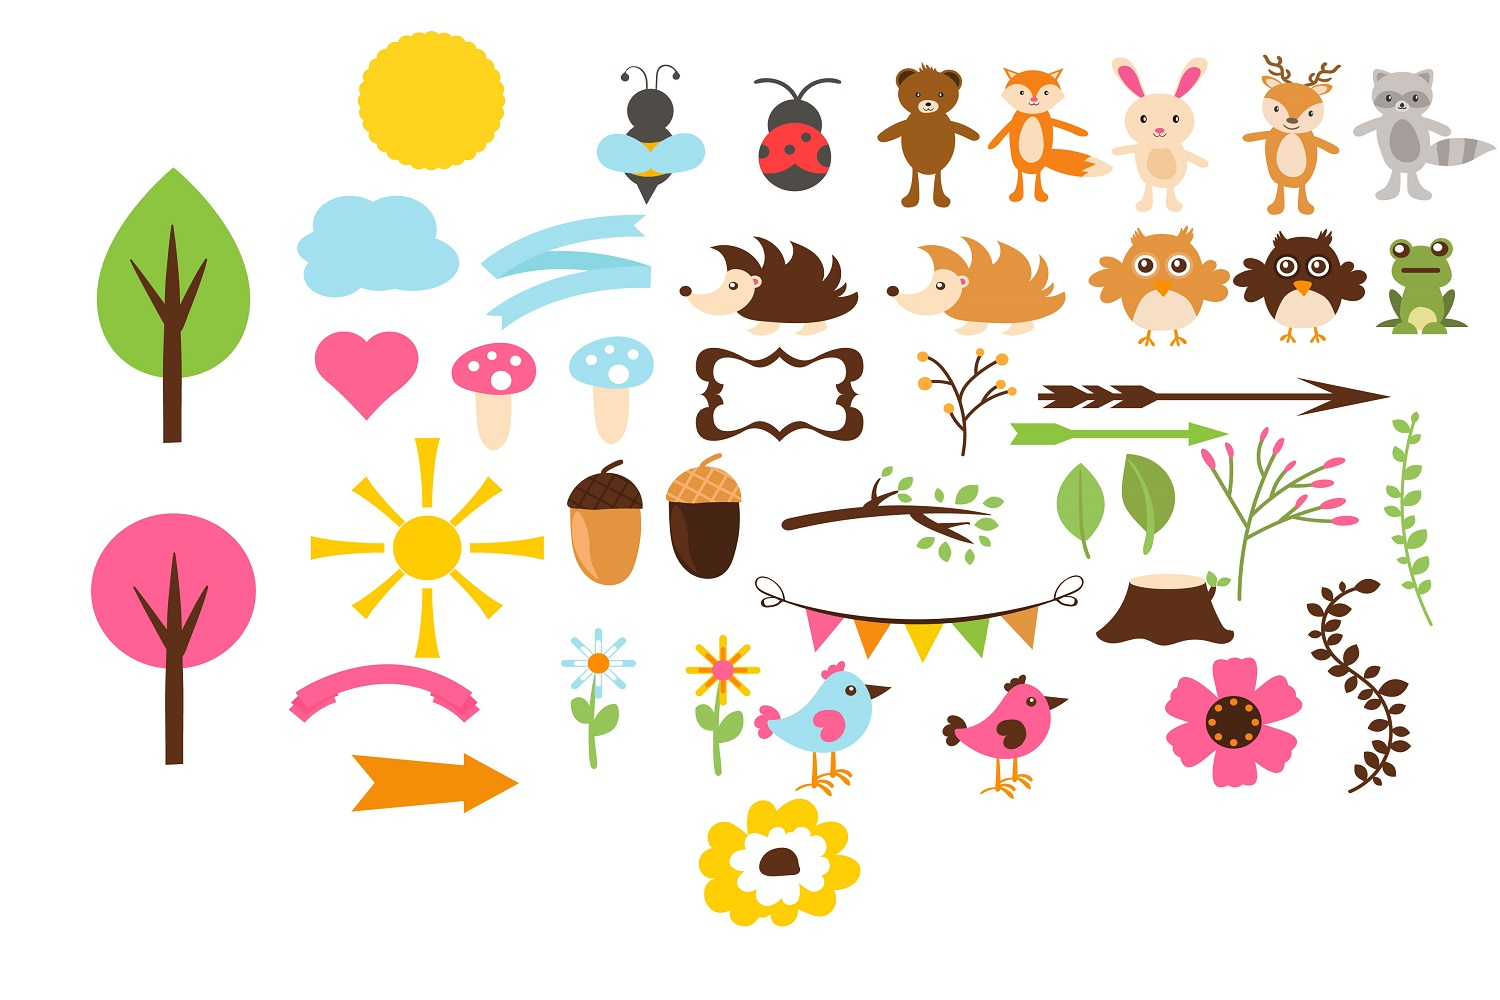 Woodlands cute Animals illustration Vector Pack example image 1